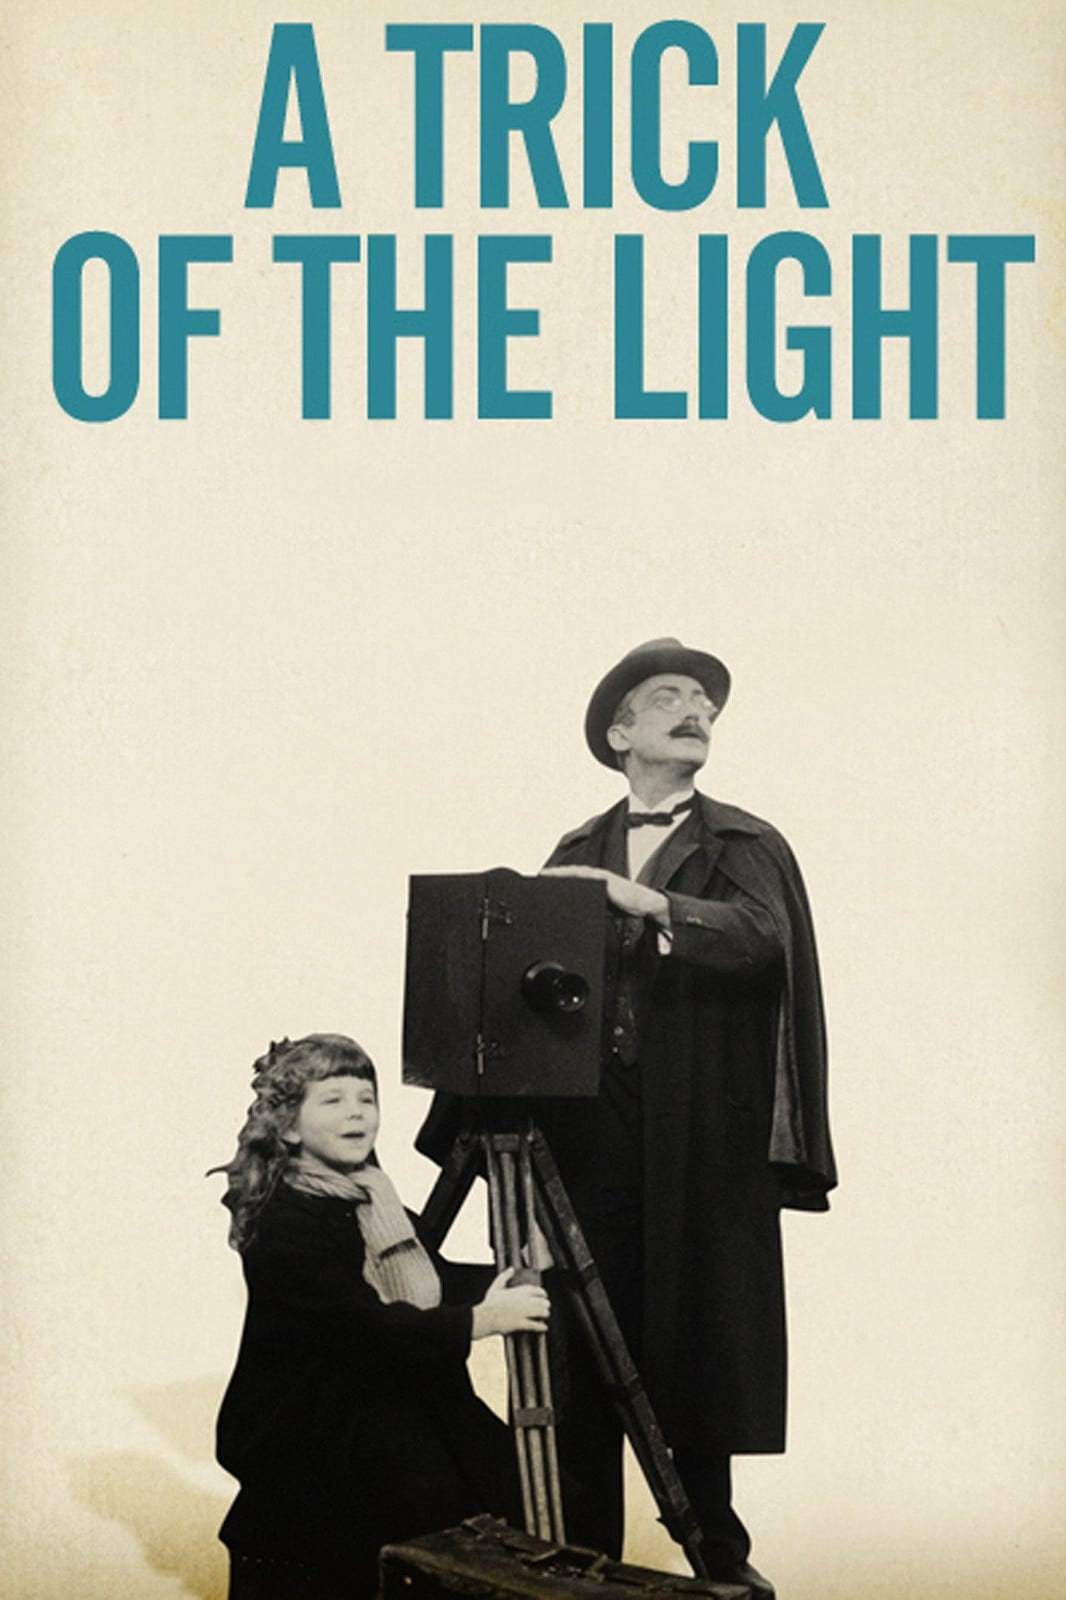 A Trick of the Light [Elektronisk resurs] / regi: Wim Wenders.